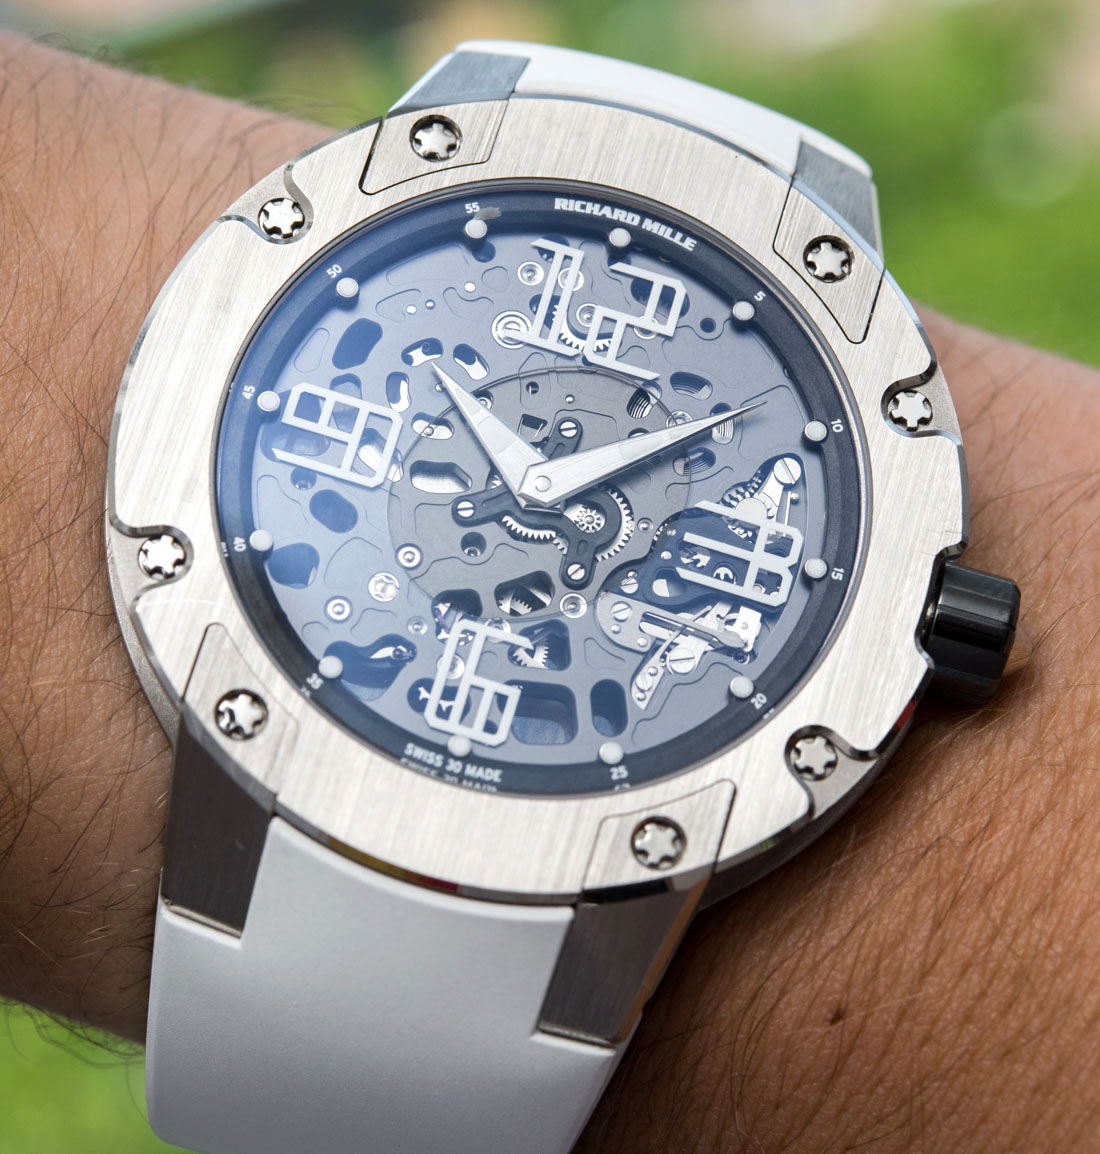 Richard Mille RM033 In White Gold Watch Review